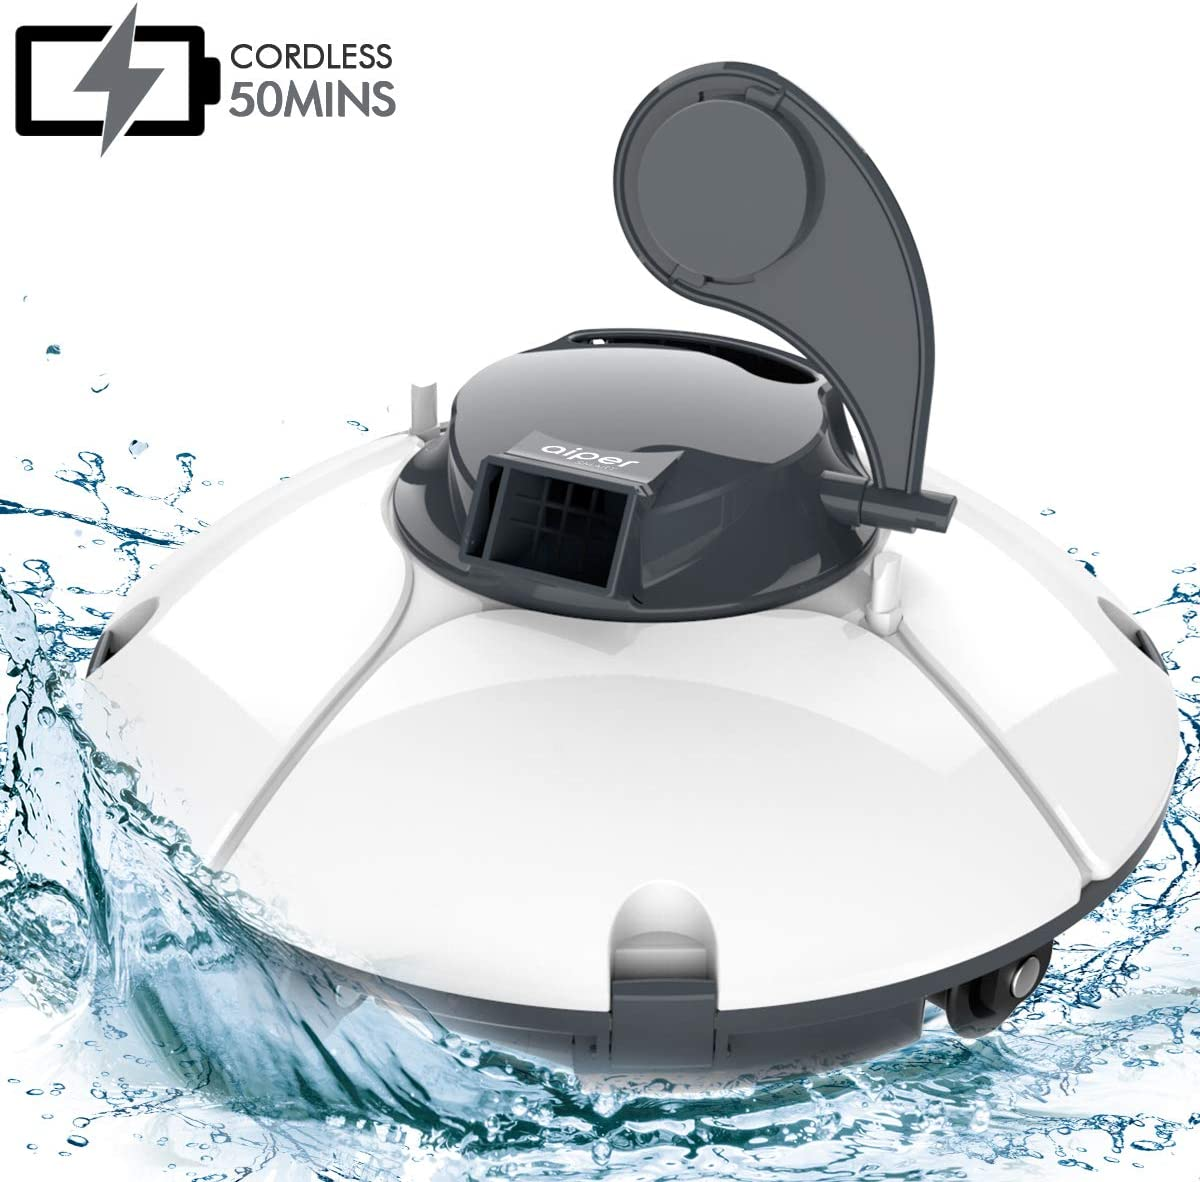 AIPER Cordless Automatic Pool Cleaner, Rechargeable Robotic Pool Cleaner with 50 Mins Running Time, IPX8 Waterproof, Ideal for In-ground/Above Ground Swimming Pools with Flat Floor Up to 540sq/ft